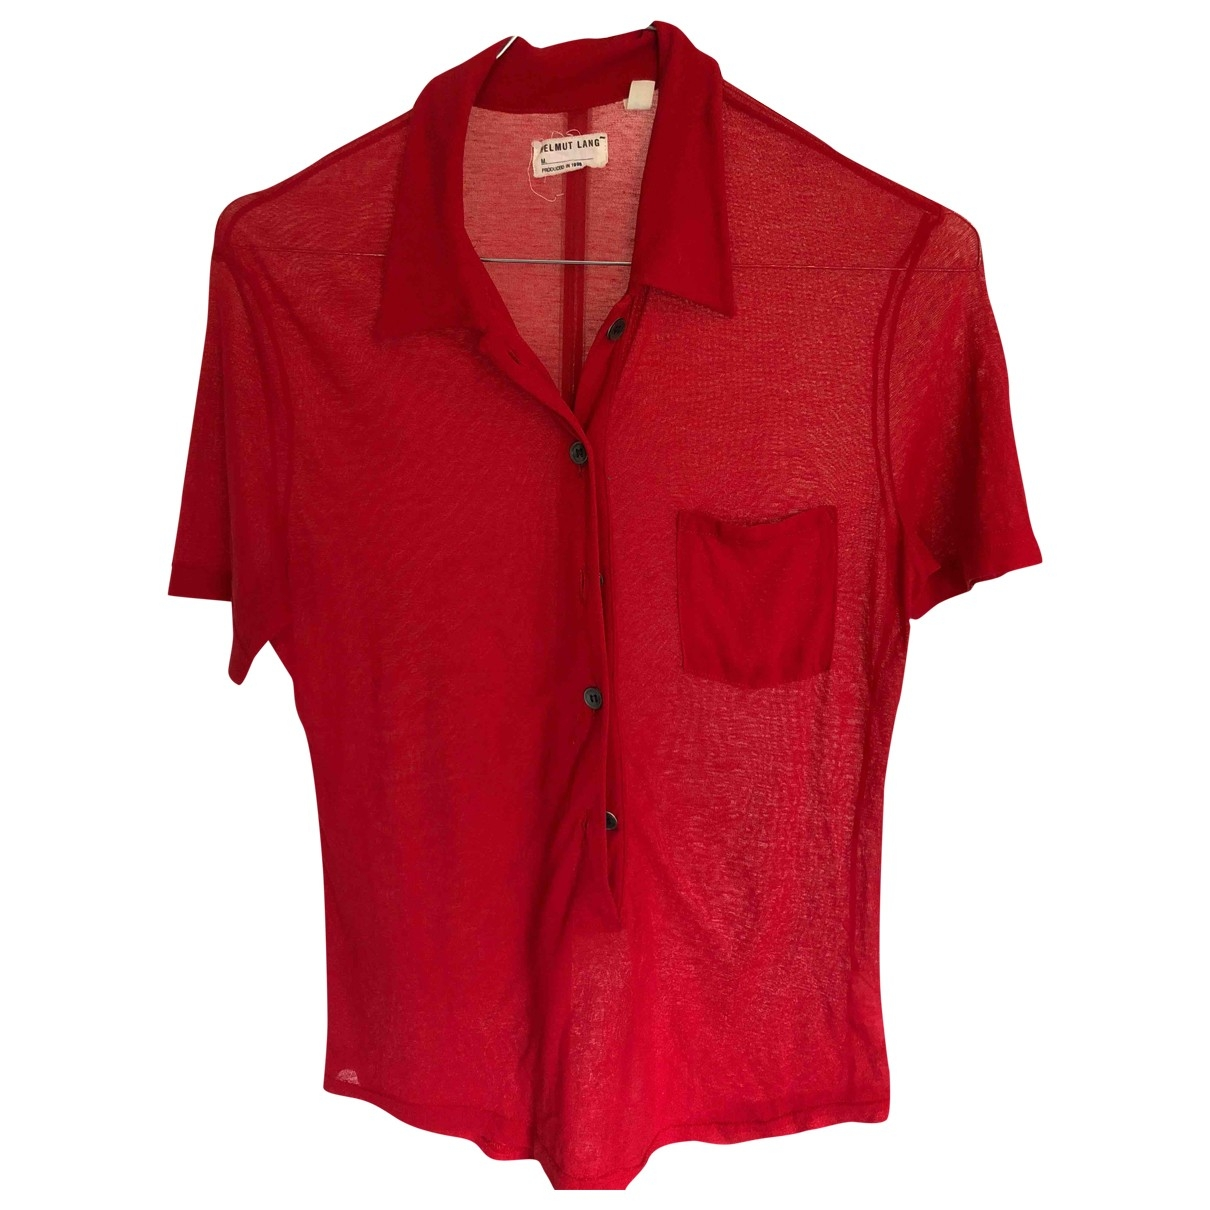 Helmut Lang N Red Cotton  top for Women XS International